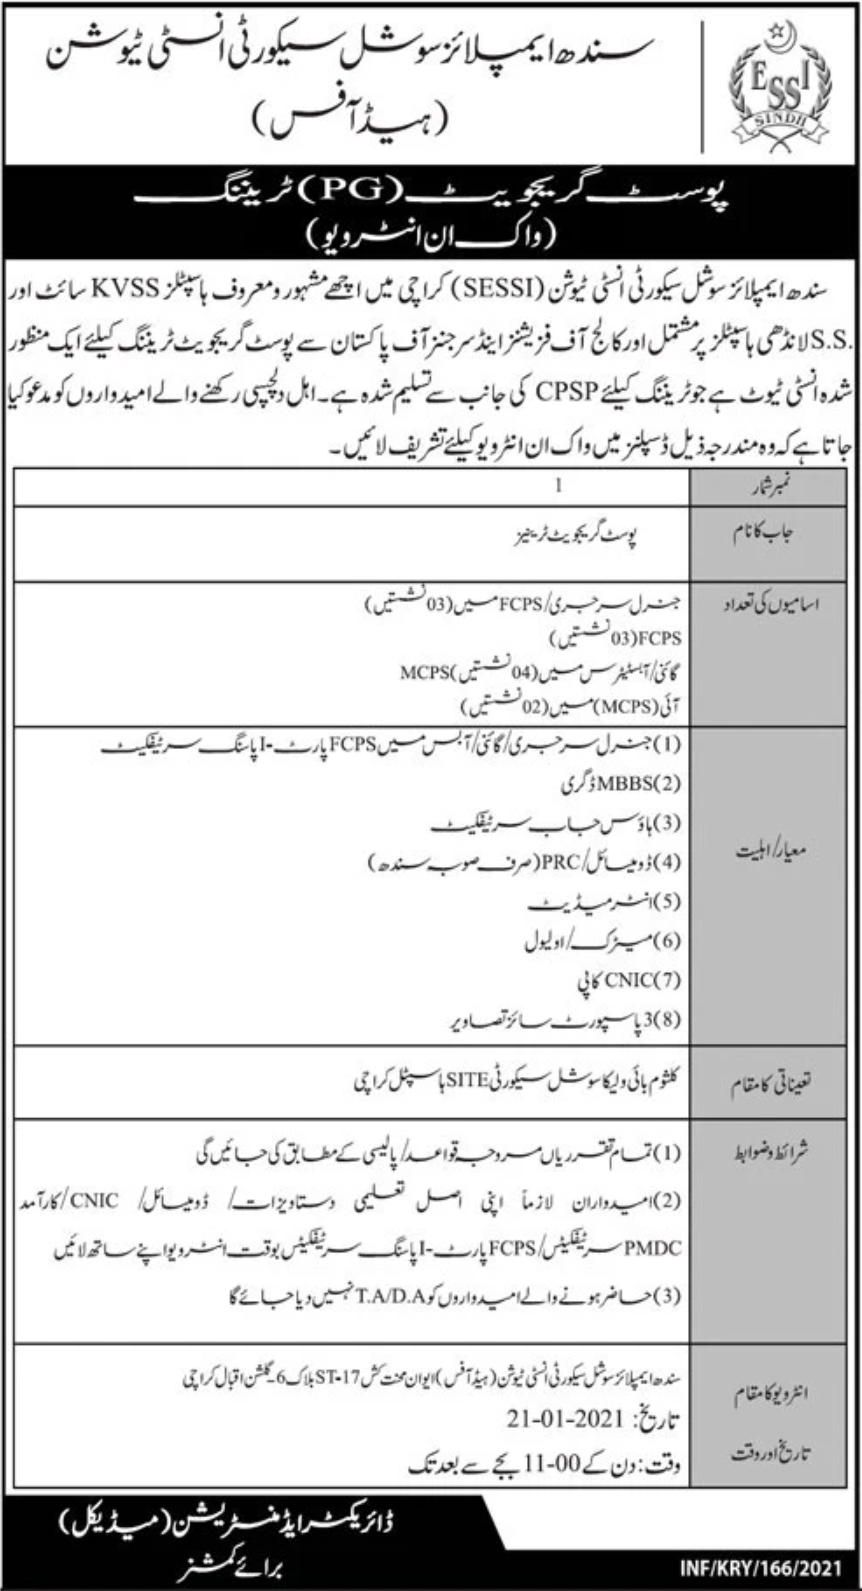 Sindh Employees Social Security Institution Jobs January 2021